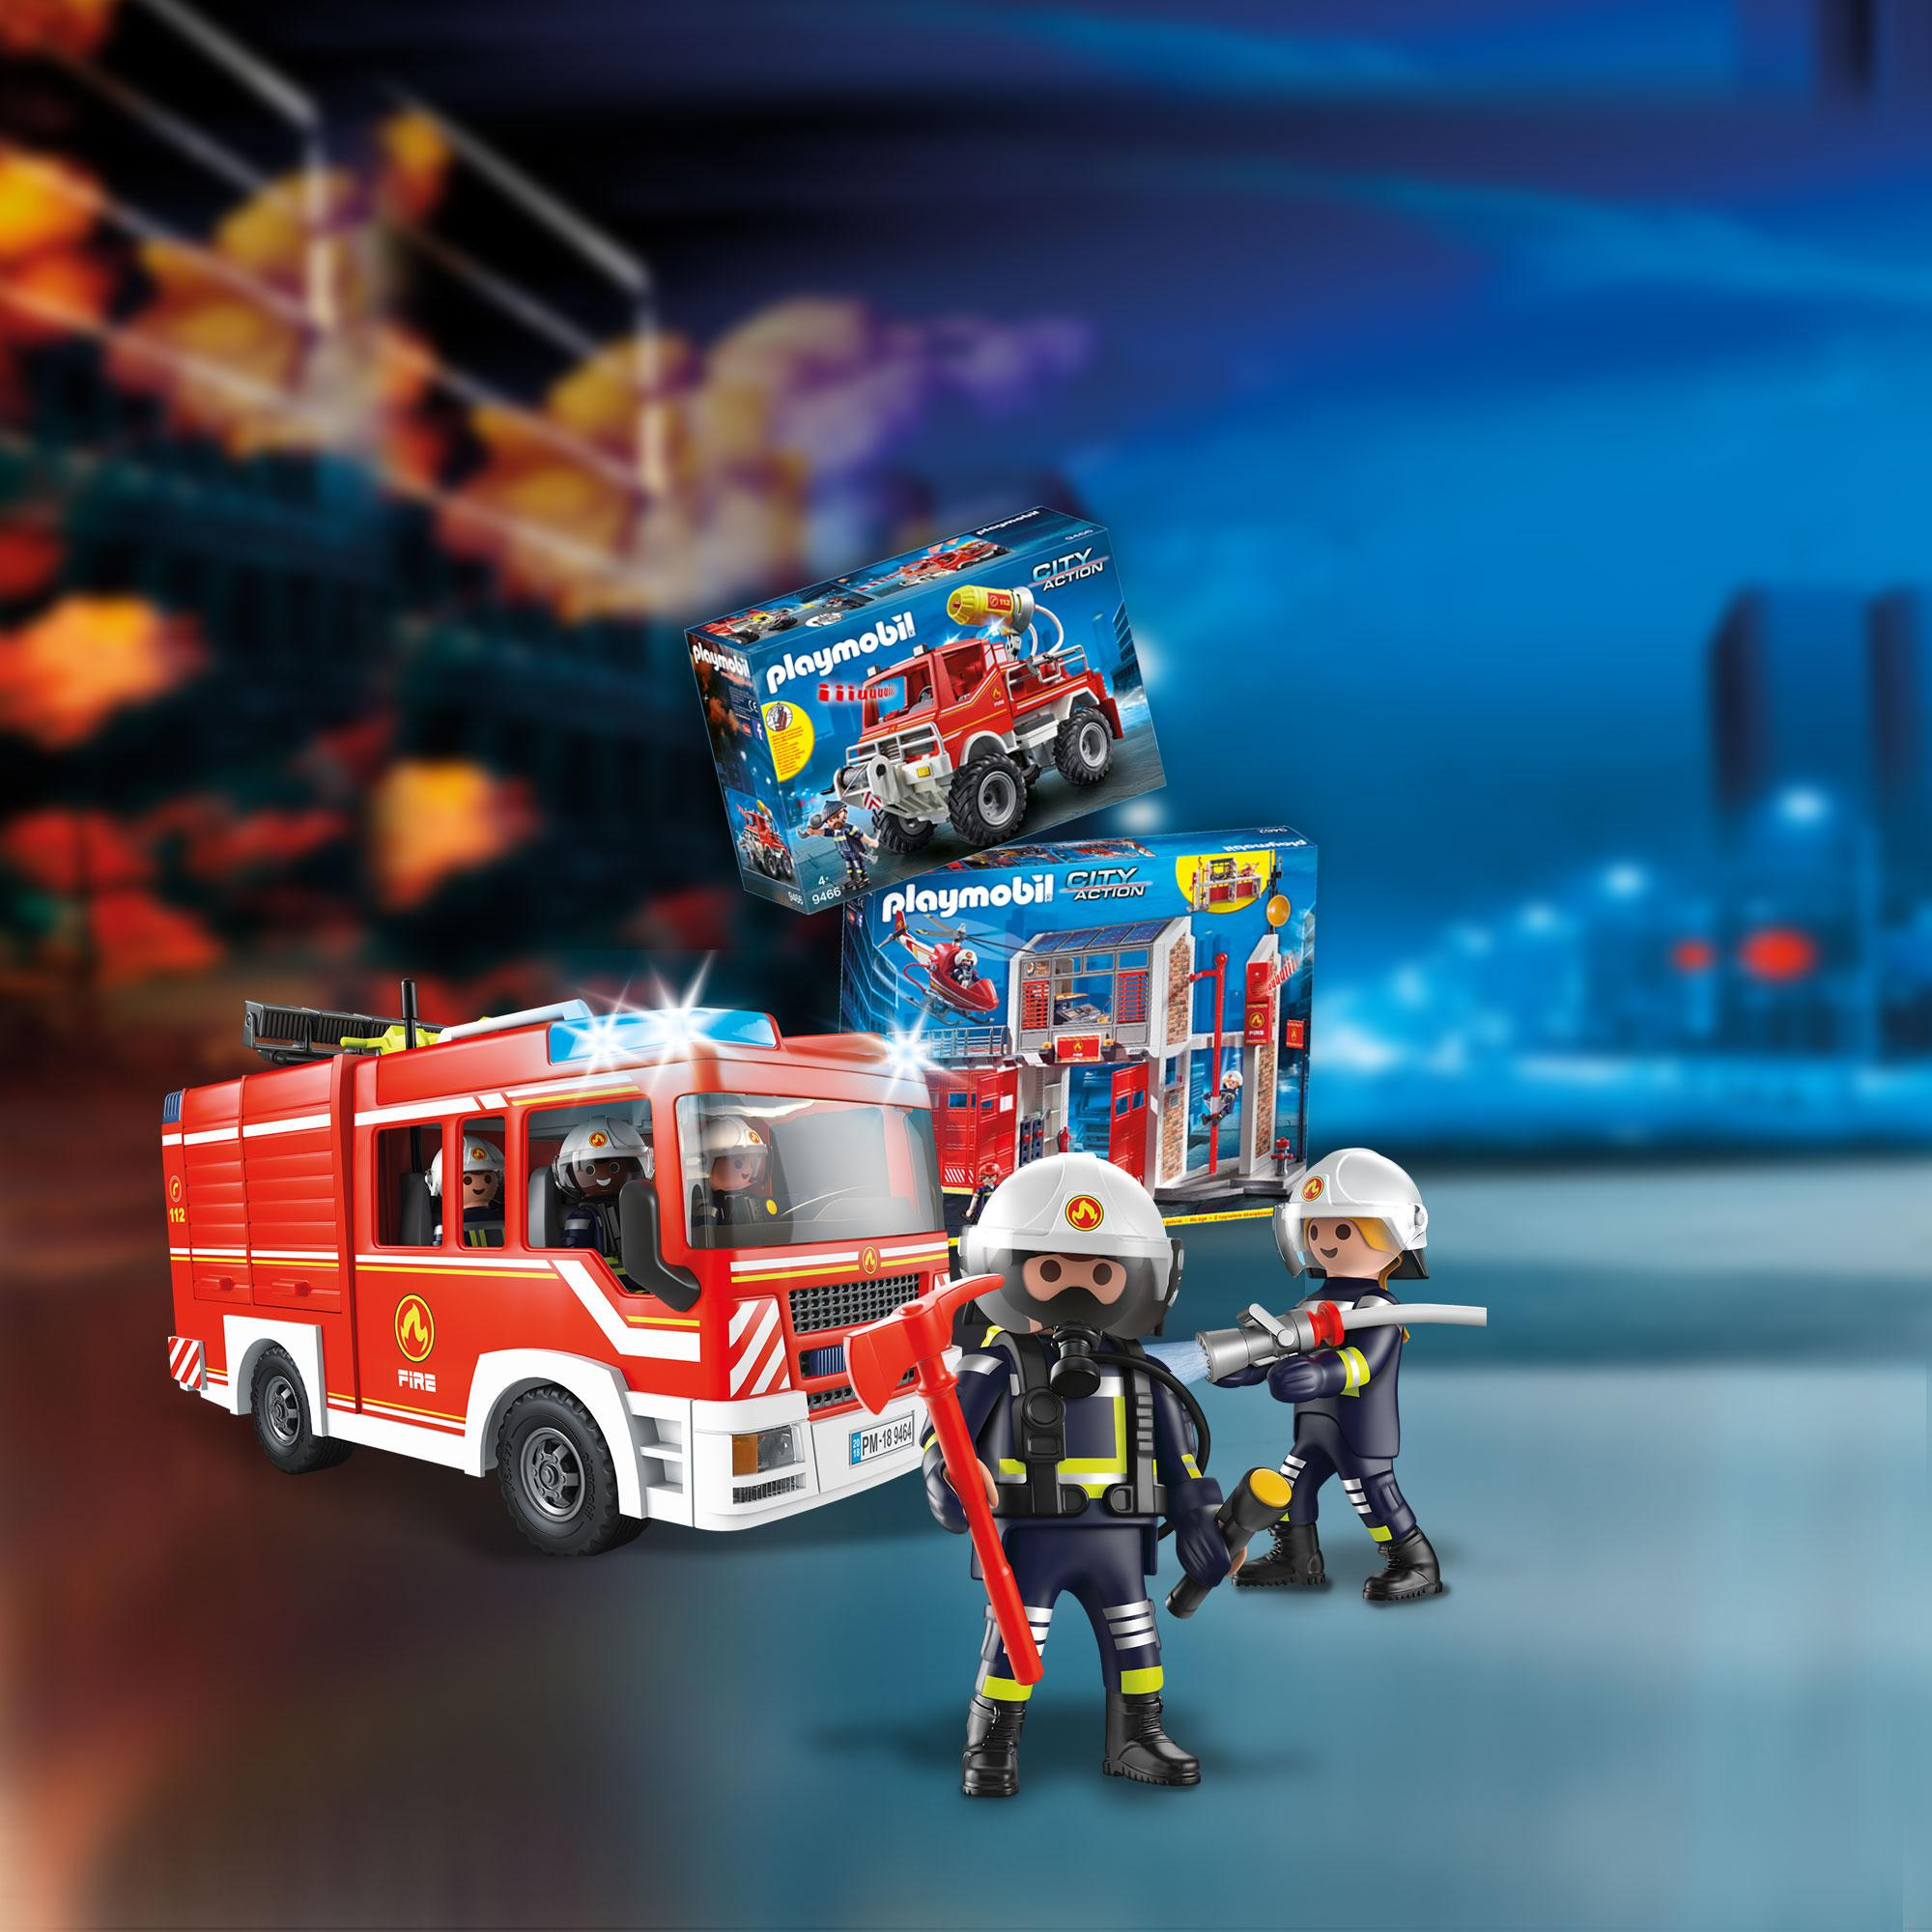 SHOP_CITYACTION_FIRERESCUE_2018_1x2_DE